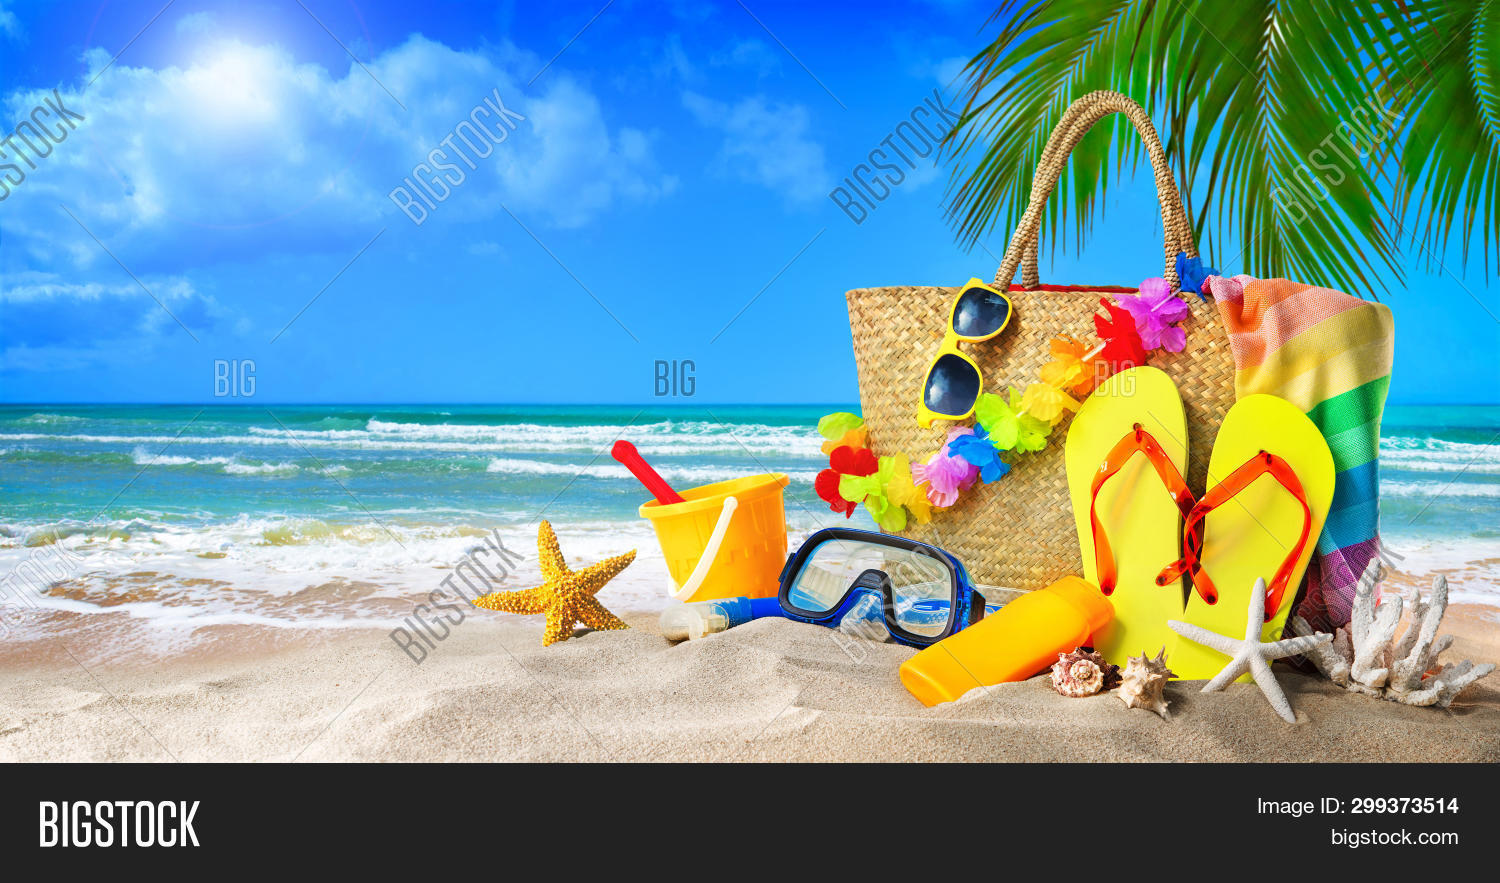 Tropical beach with sunbathing accessories, summer holiday background. Travel and beach family vacat